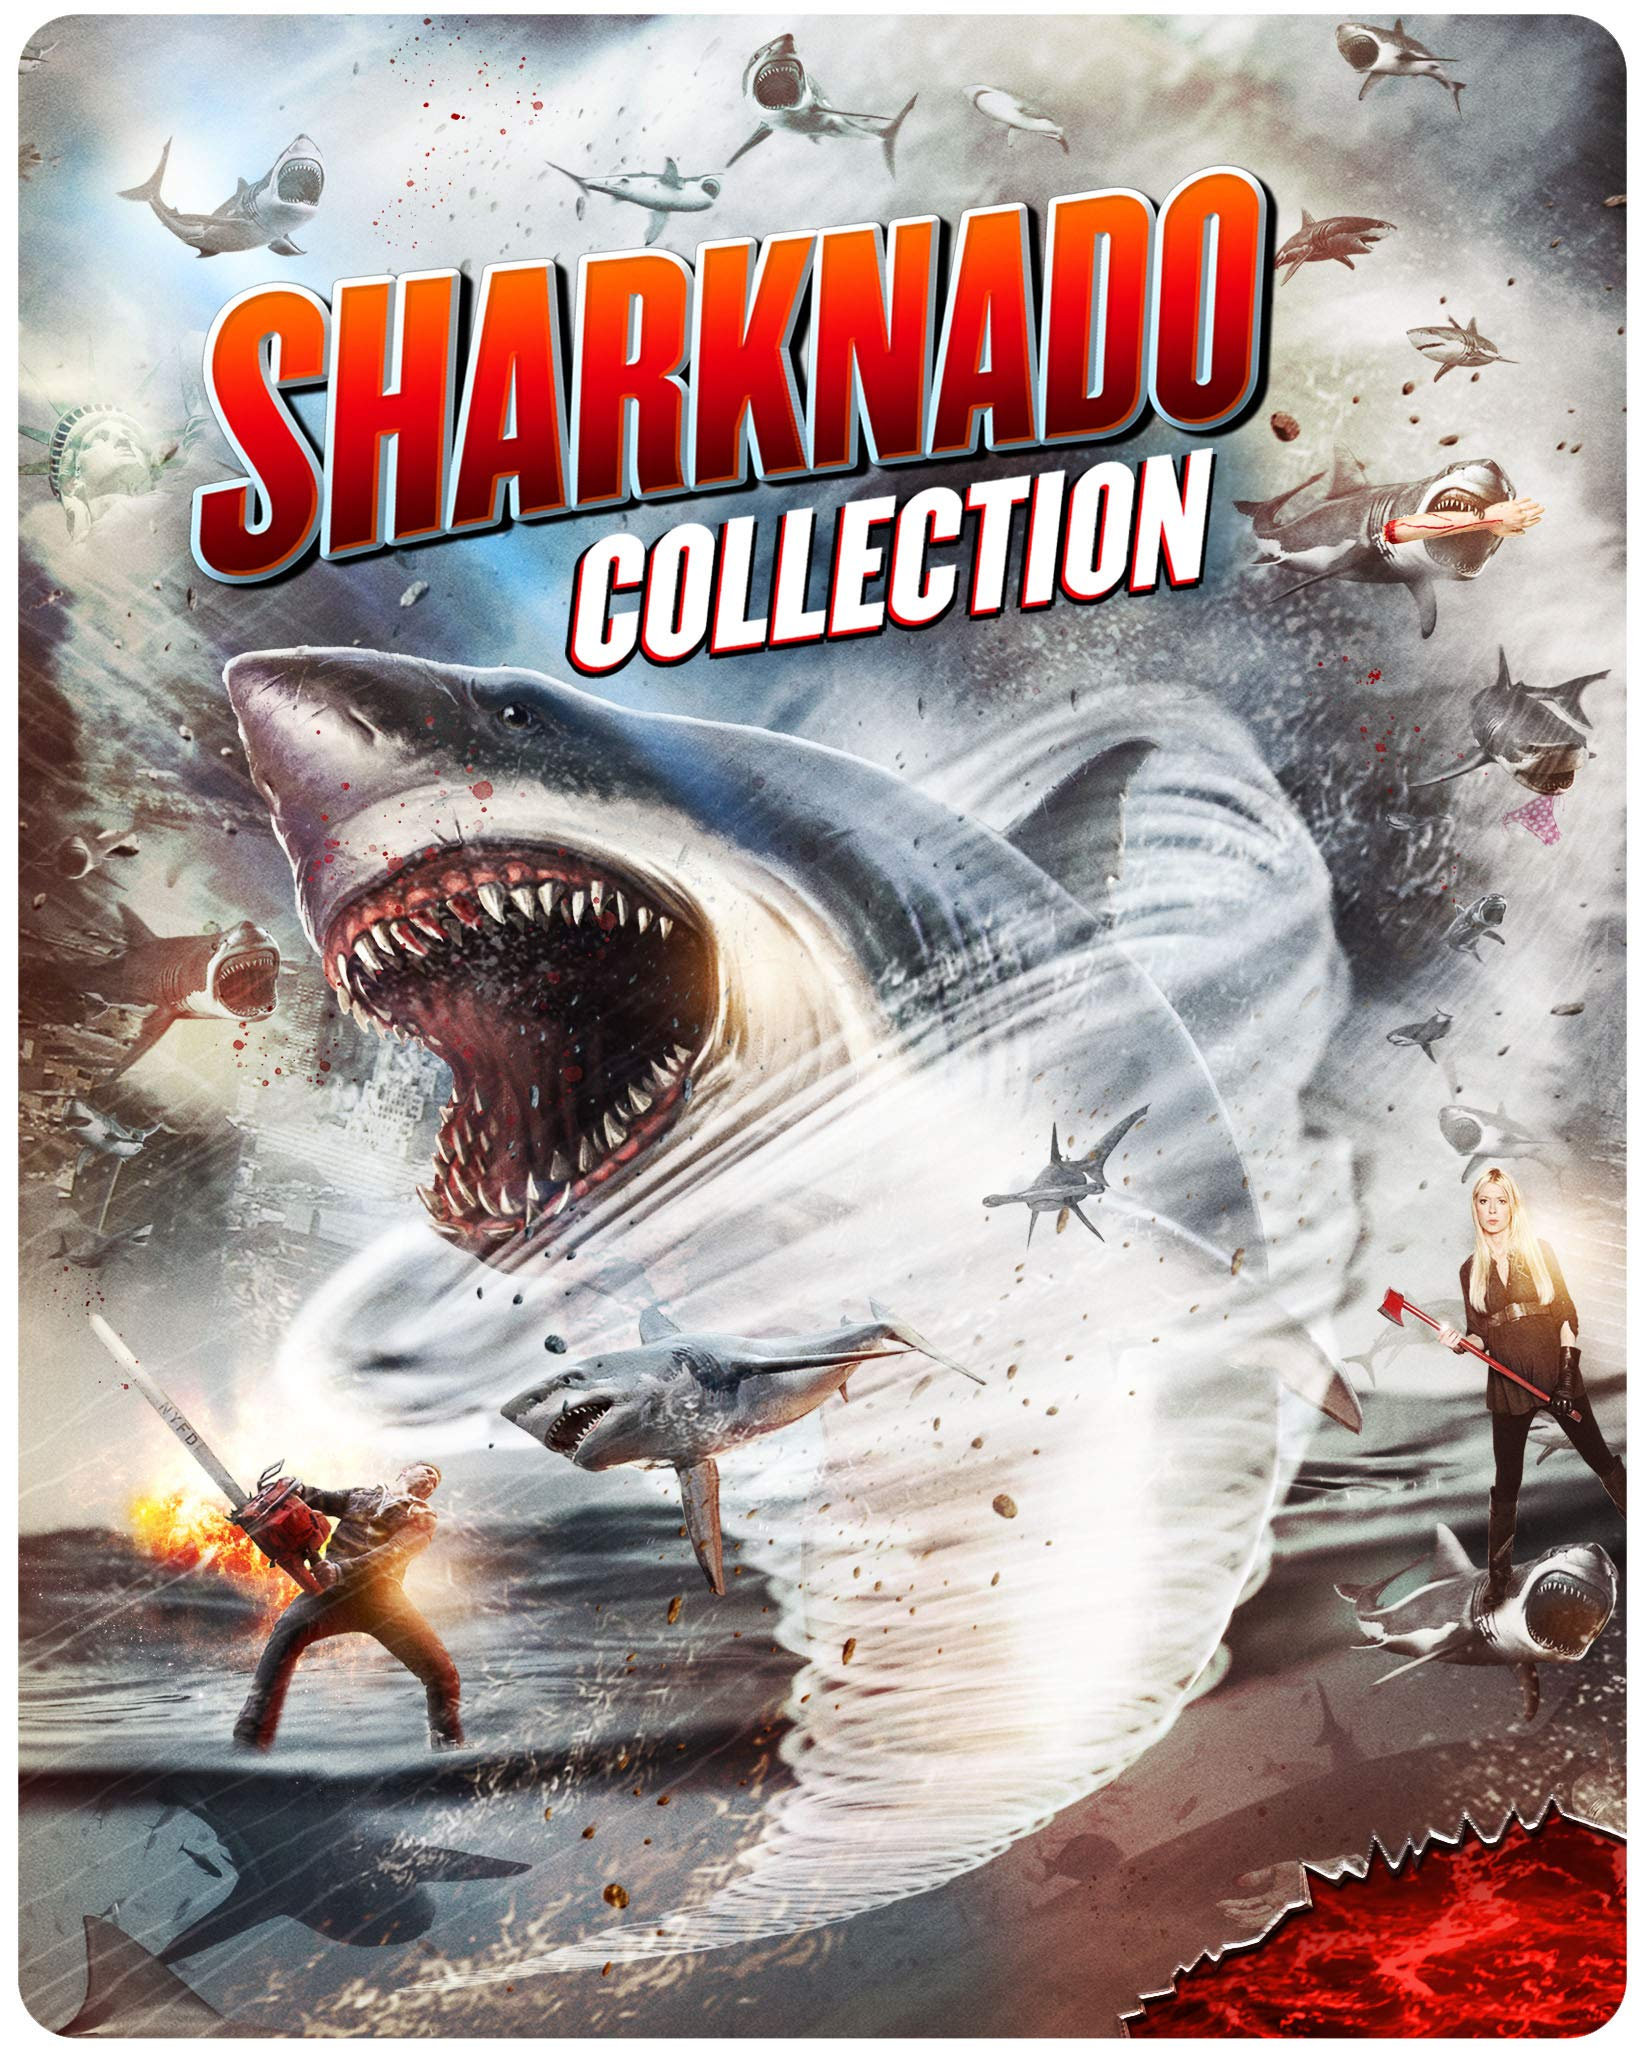 Blu-ray : Sharknado 1-6 Complete Collection (Steelbook, Collector's Edition, Widescreen, 2 Pack)